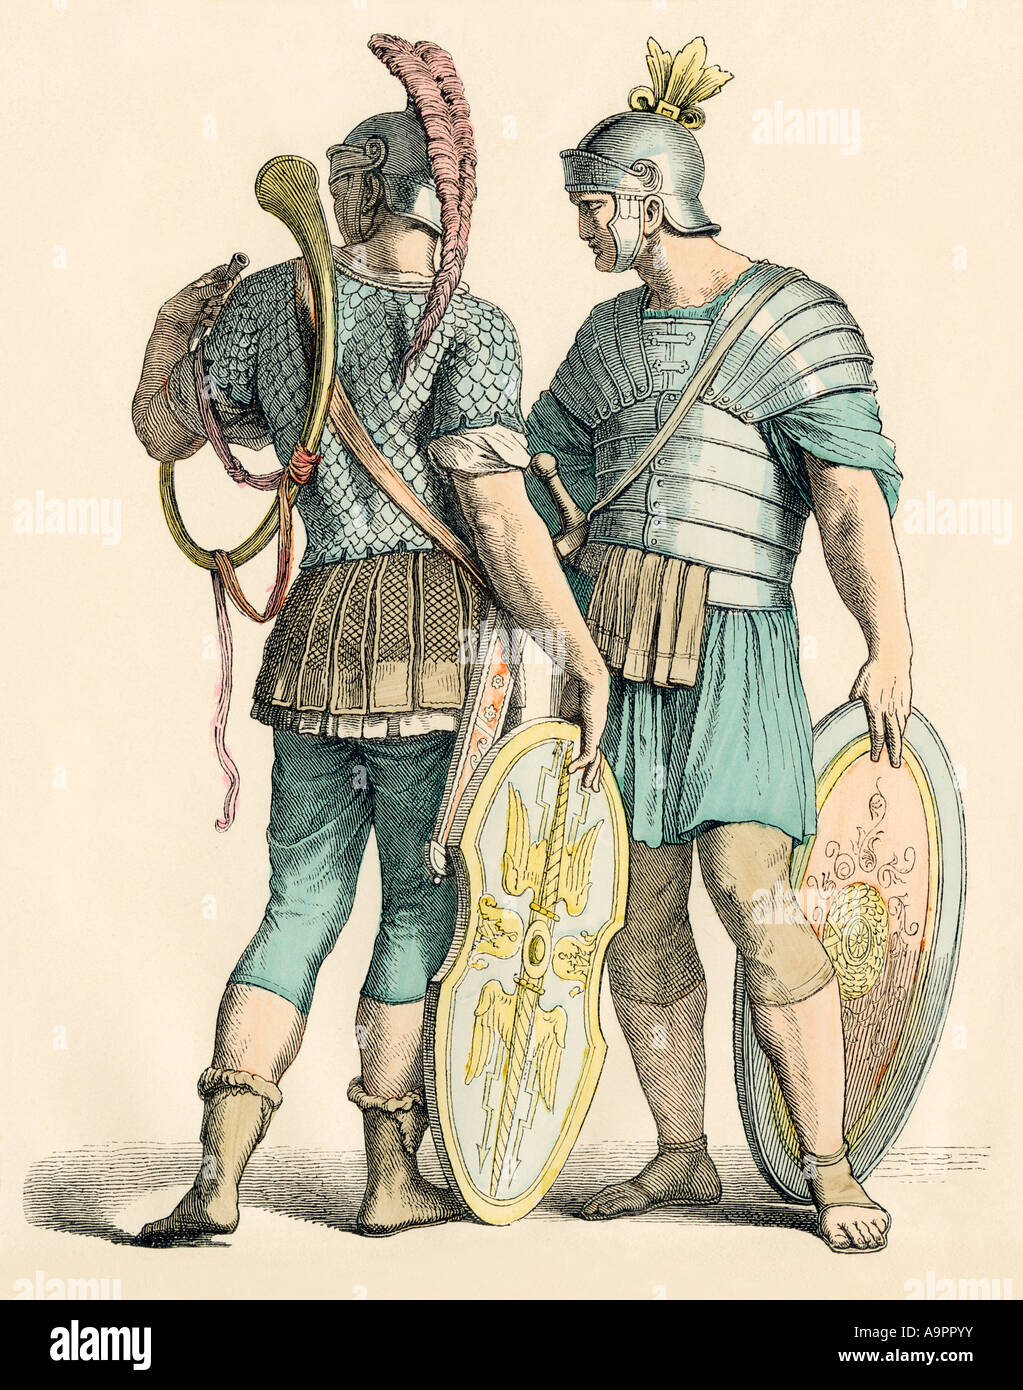 Roman soldiers. Hand-colored print - Stock Image